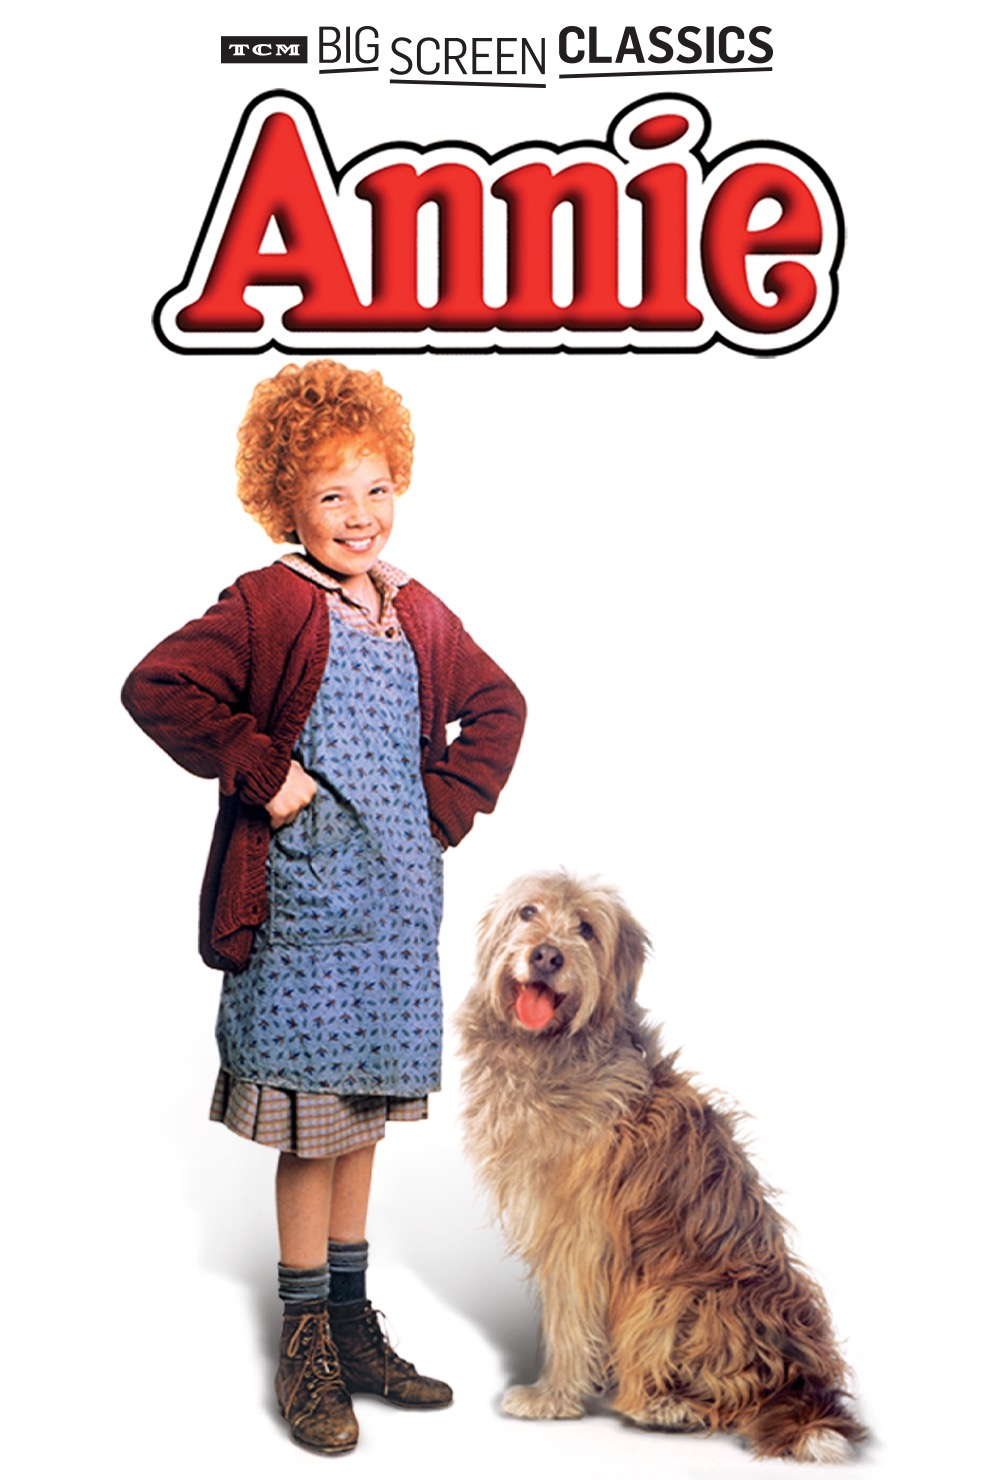 Annie (1982) presented by TCM